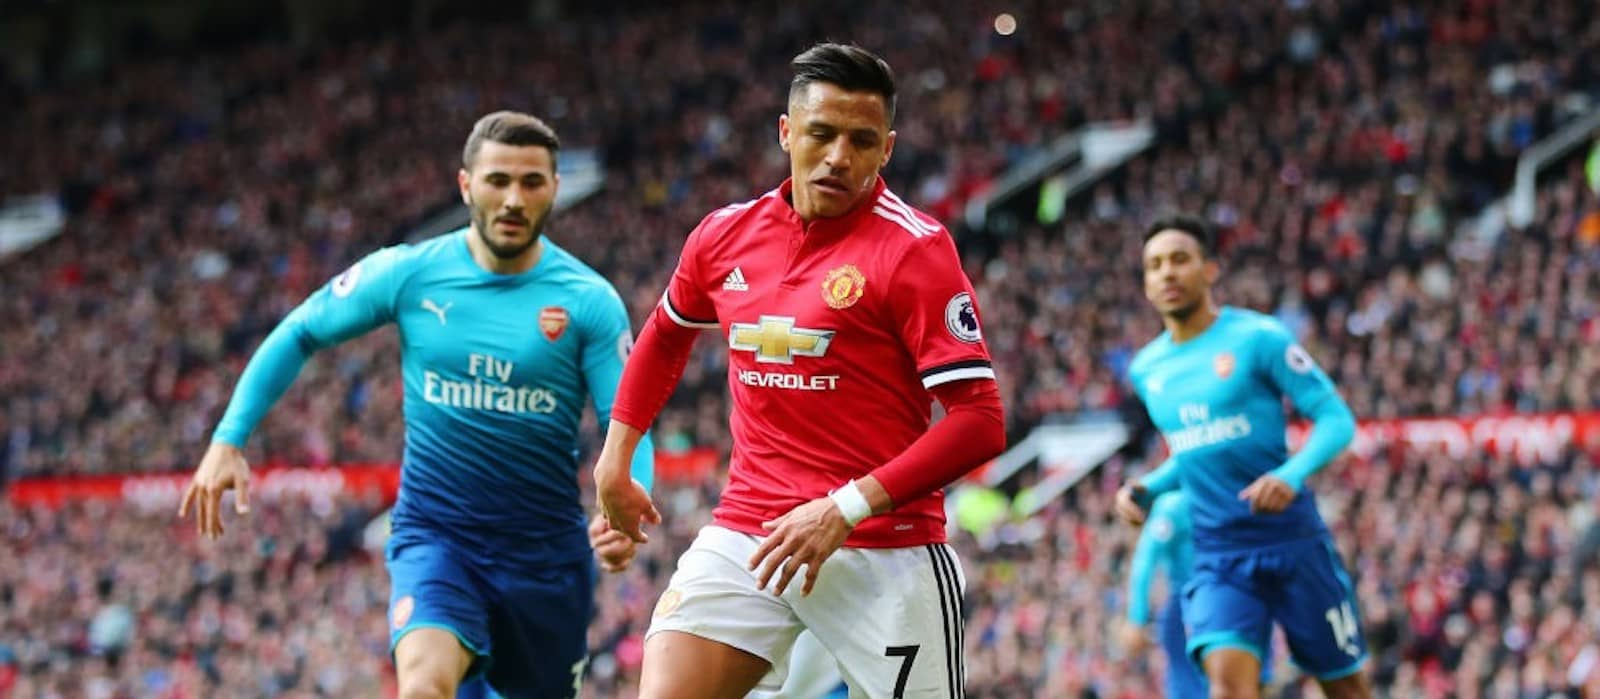 Alexis Sanchez expresses excitement ahead of FA Cup final with Chelsea